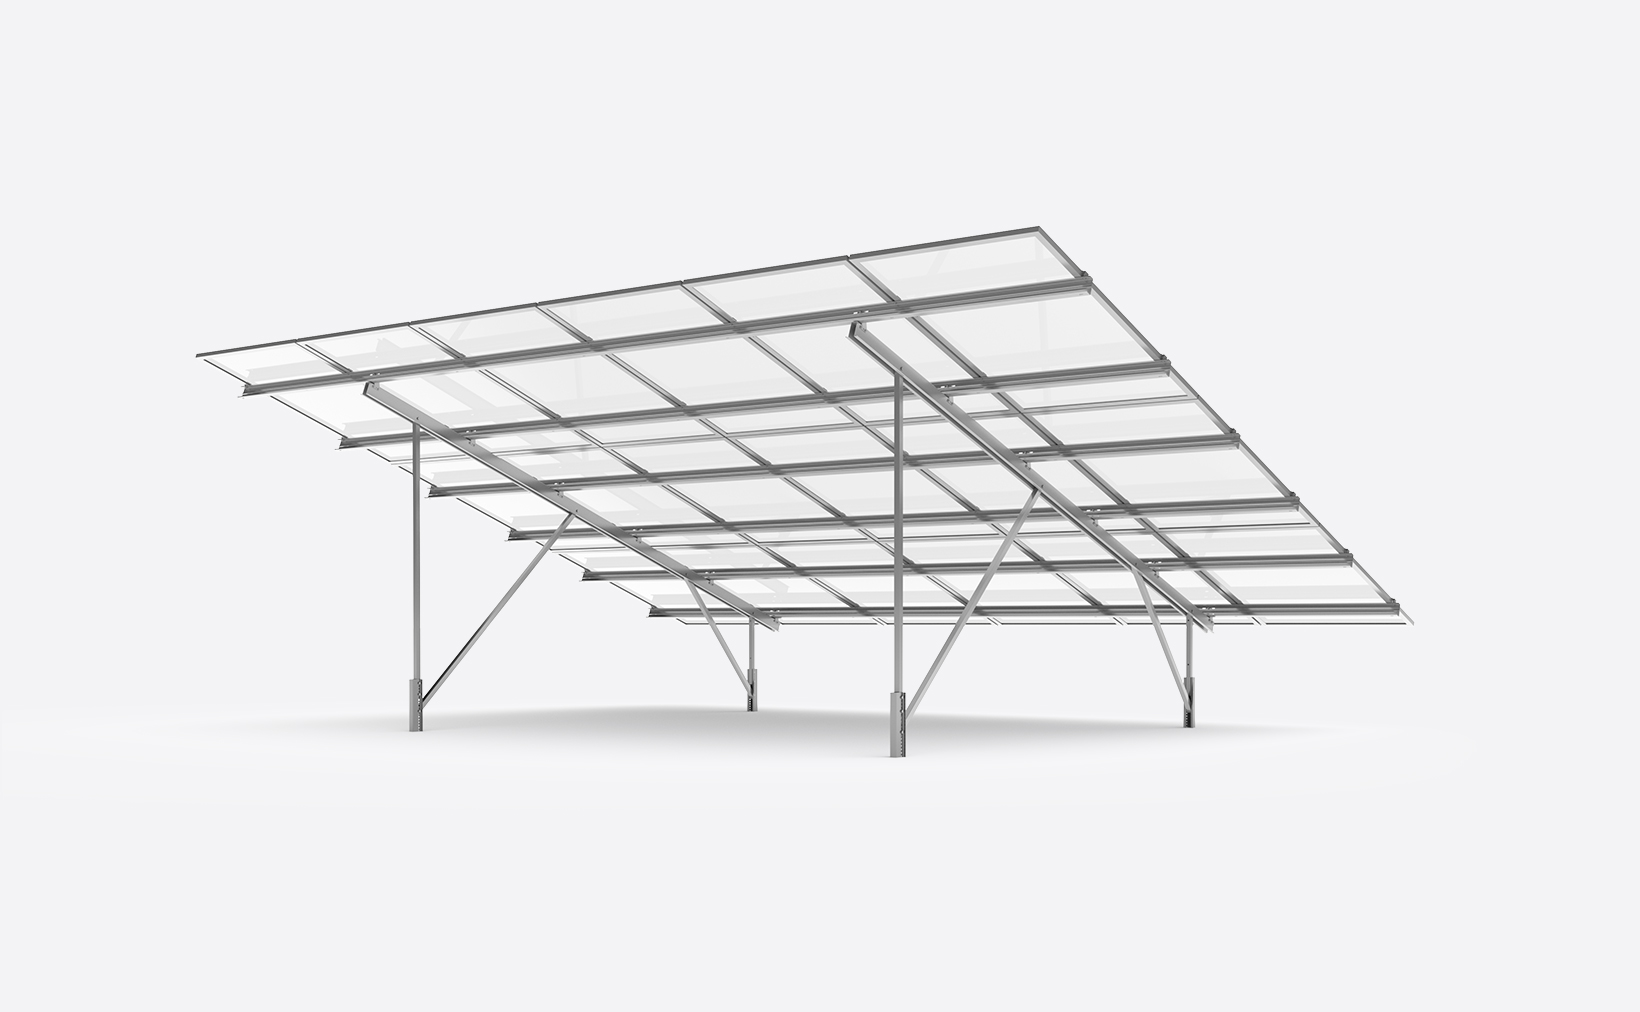 Sigma II ground mount system for solar plants